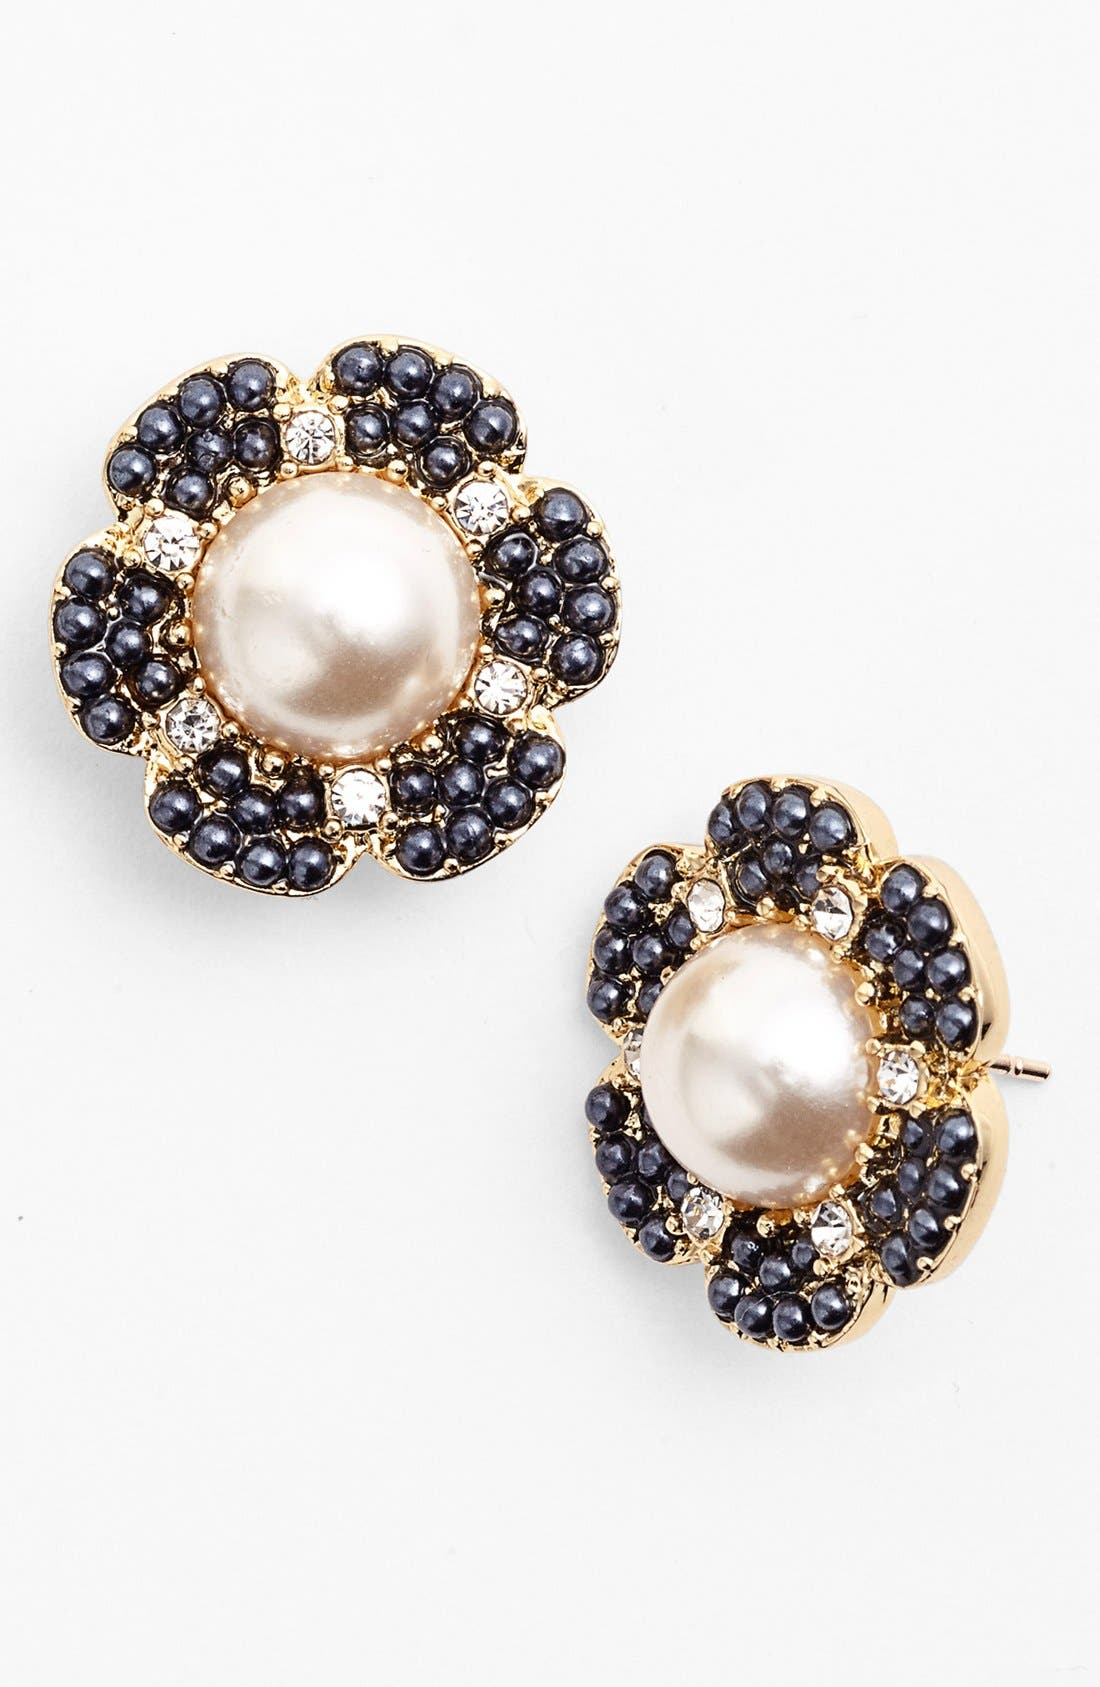 Main Image - kate spade new york 'park floral' stud earrings